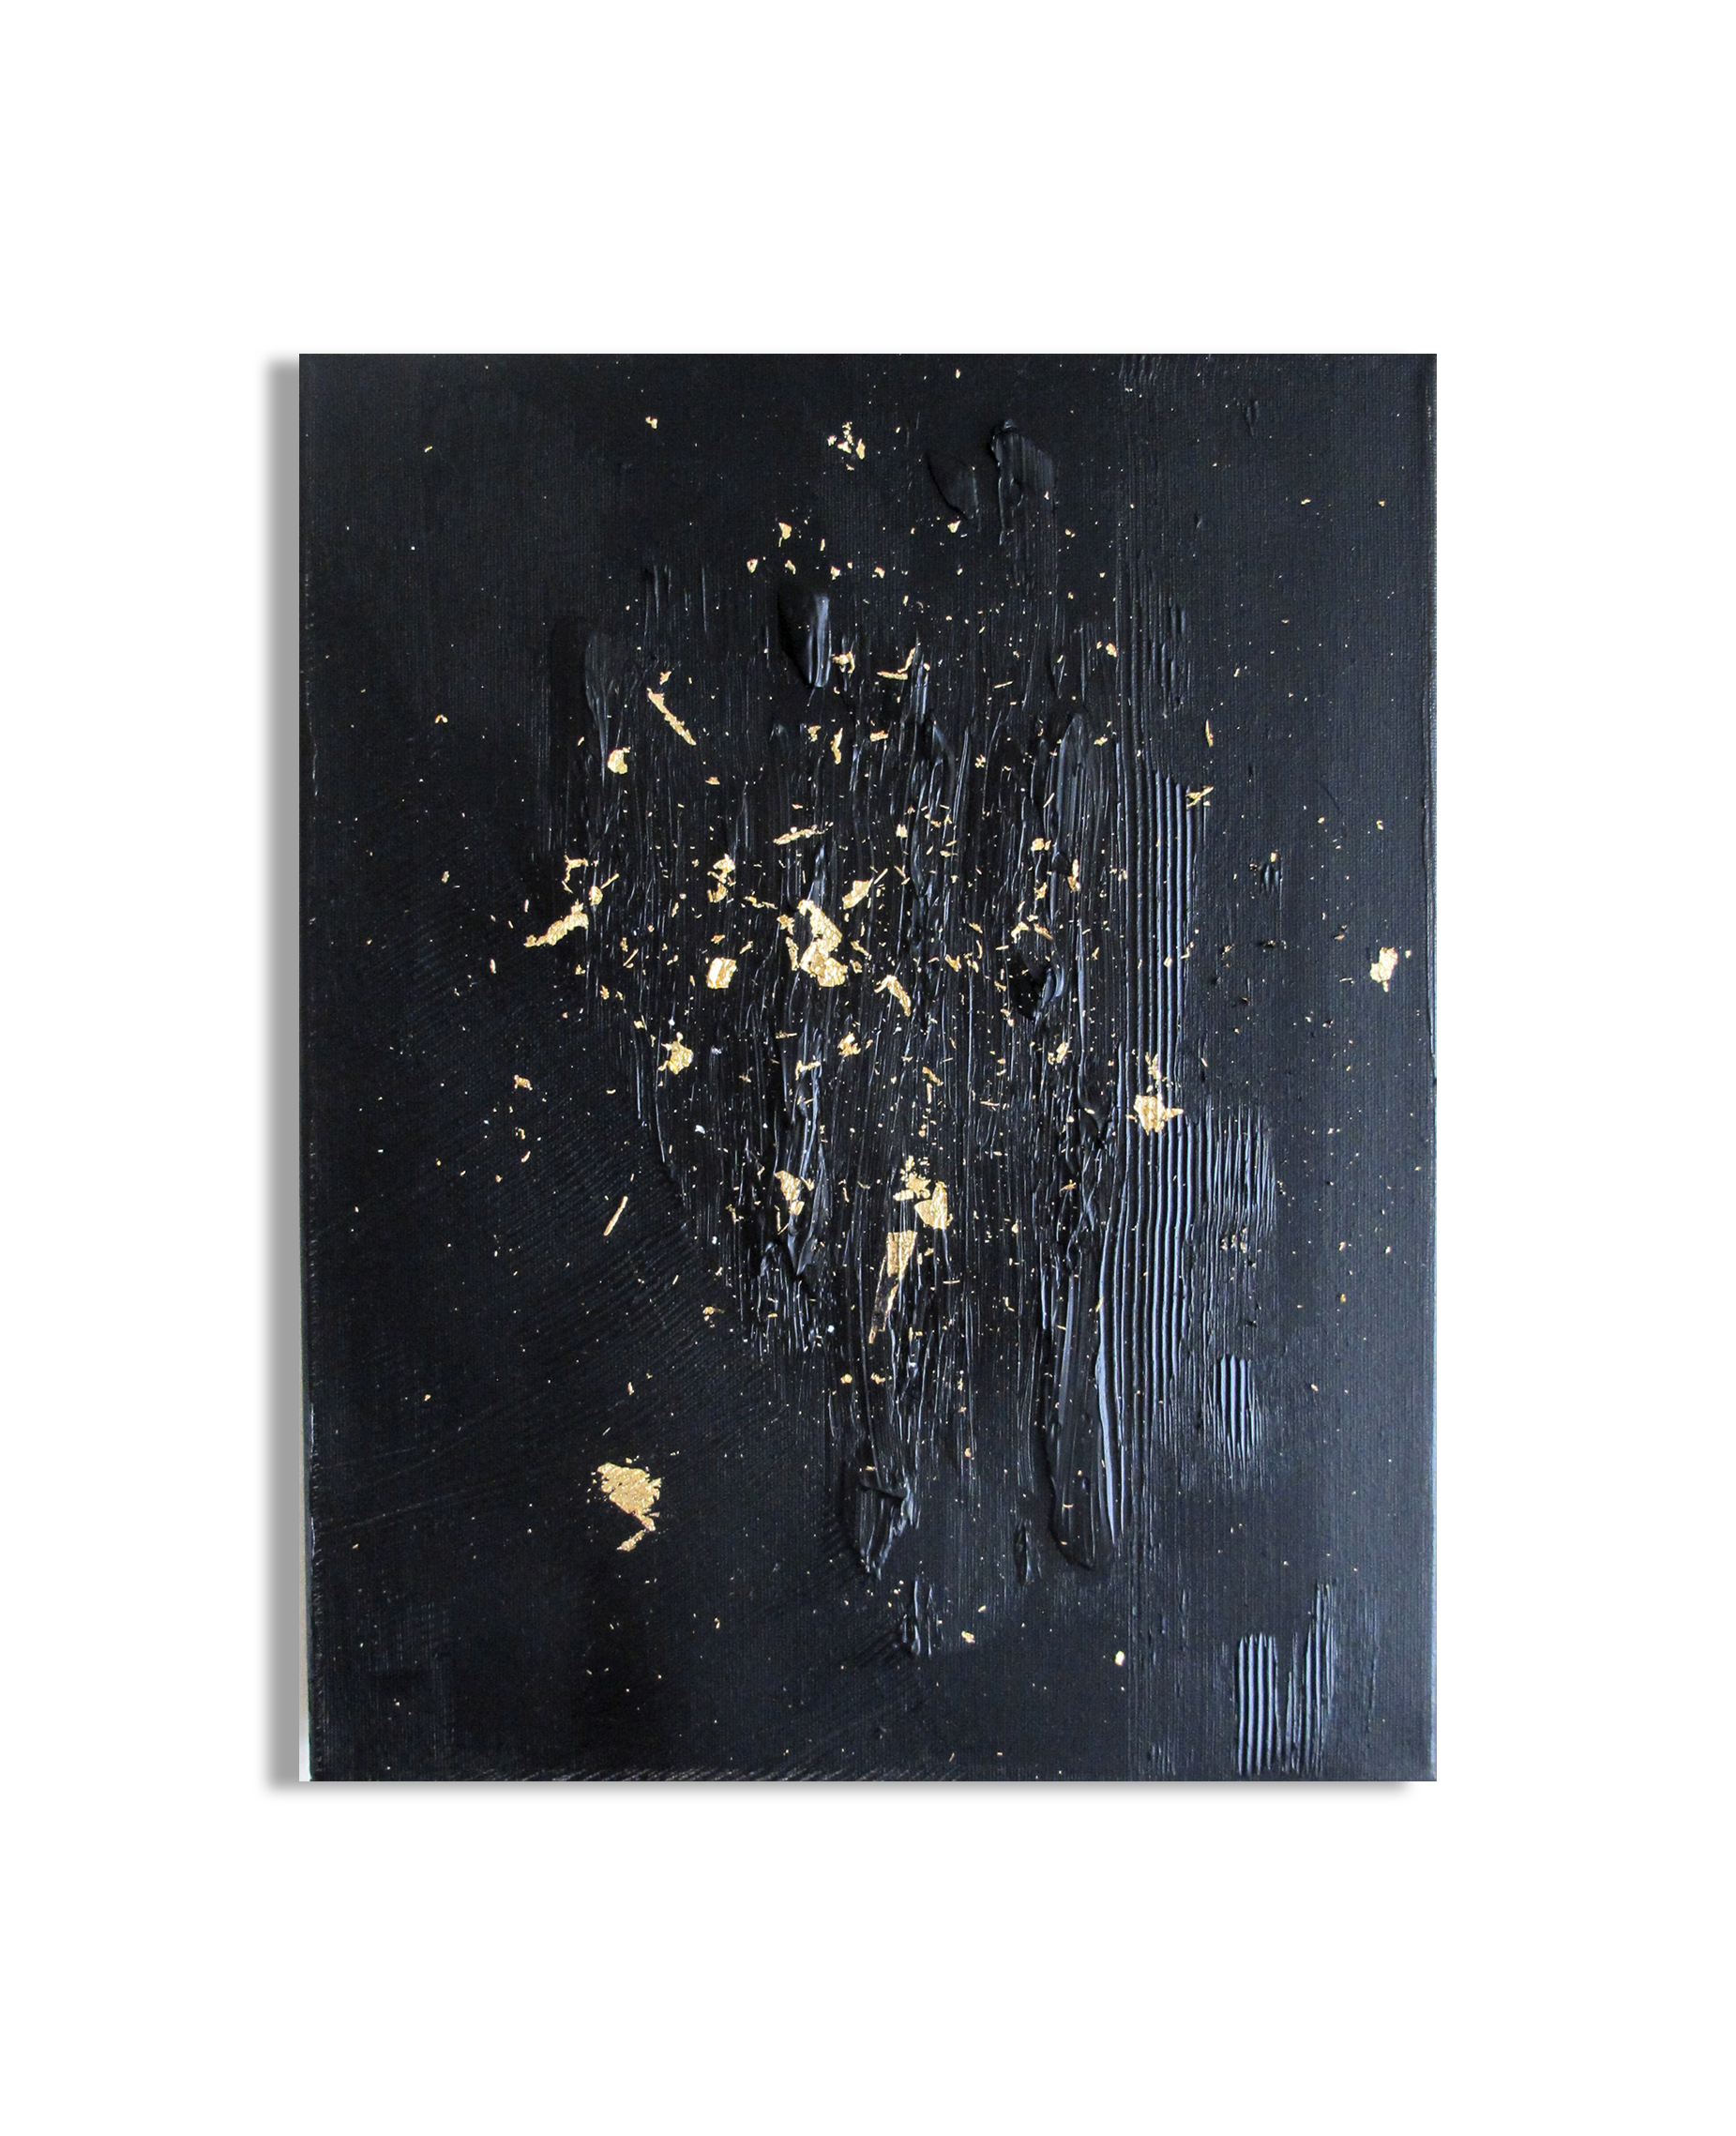 14 X 11 INCHES OIL / GOLD LEAF